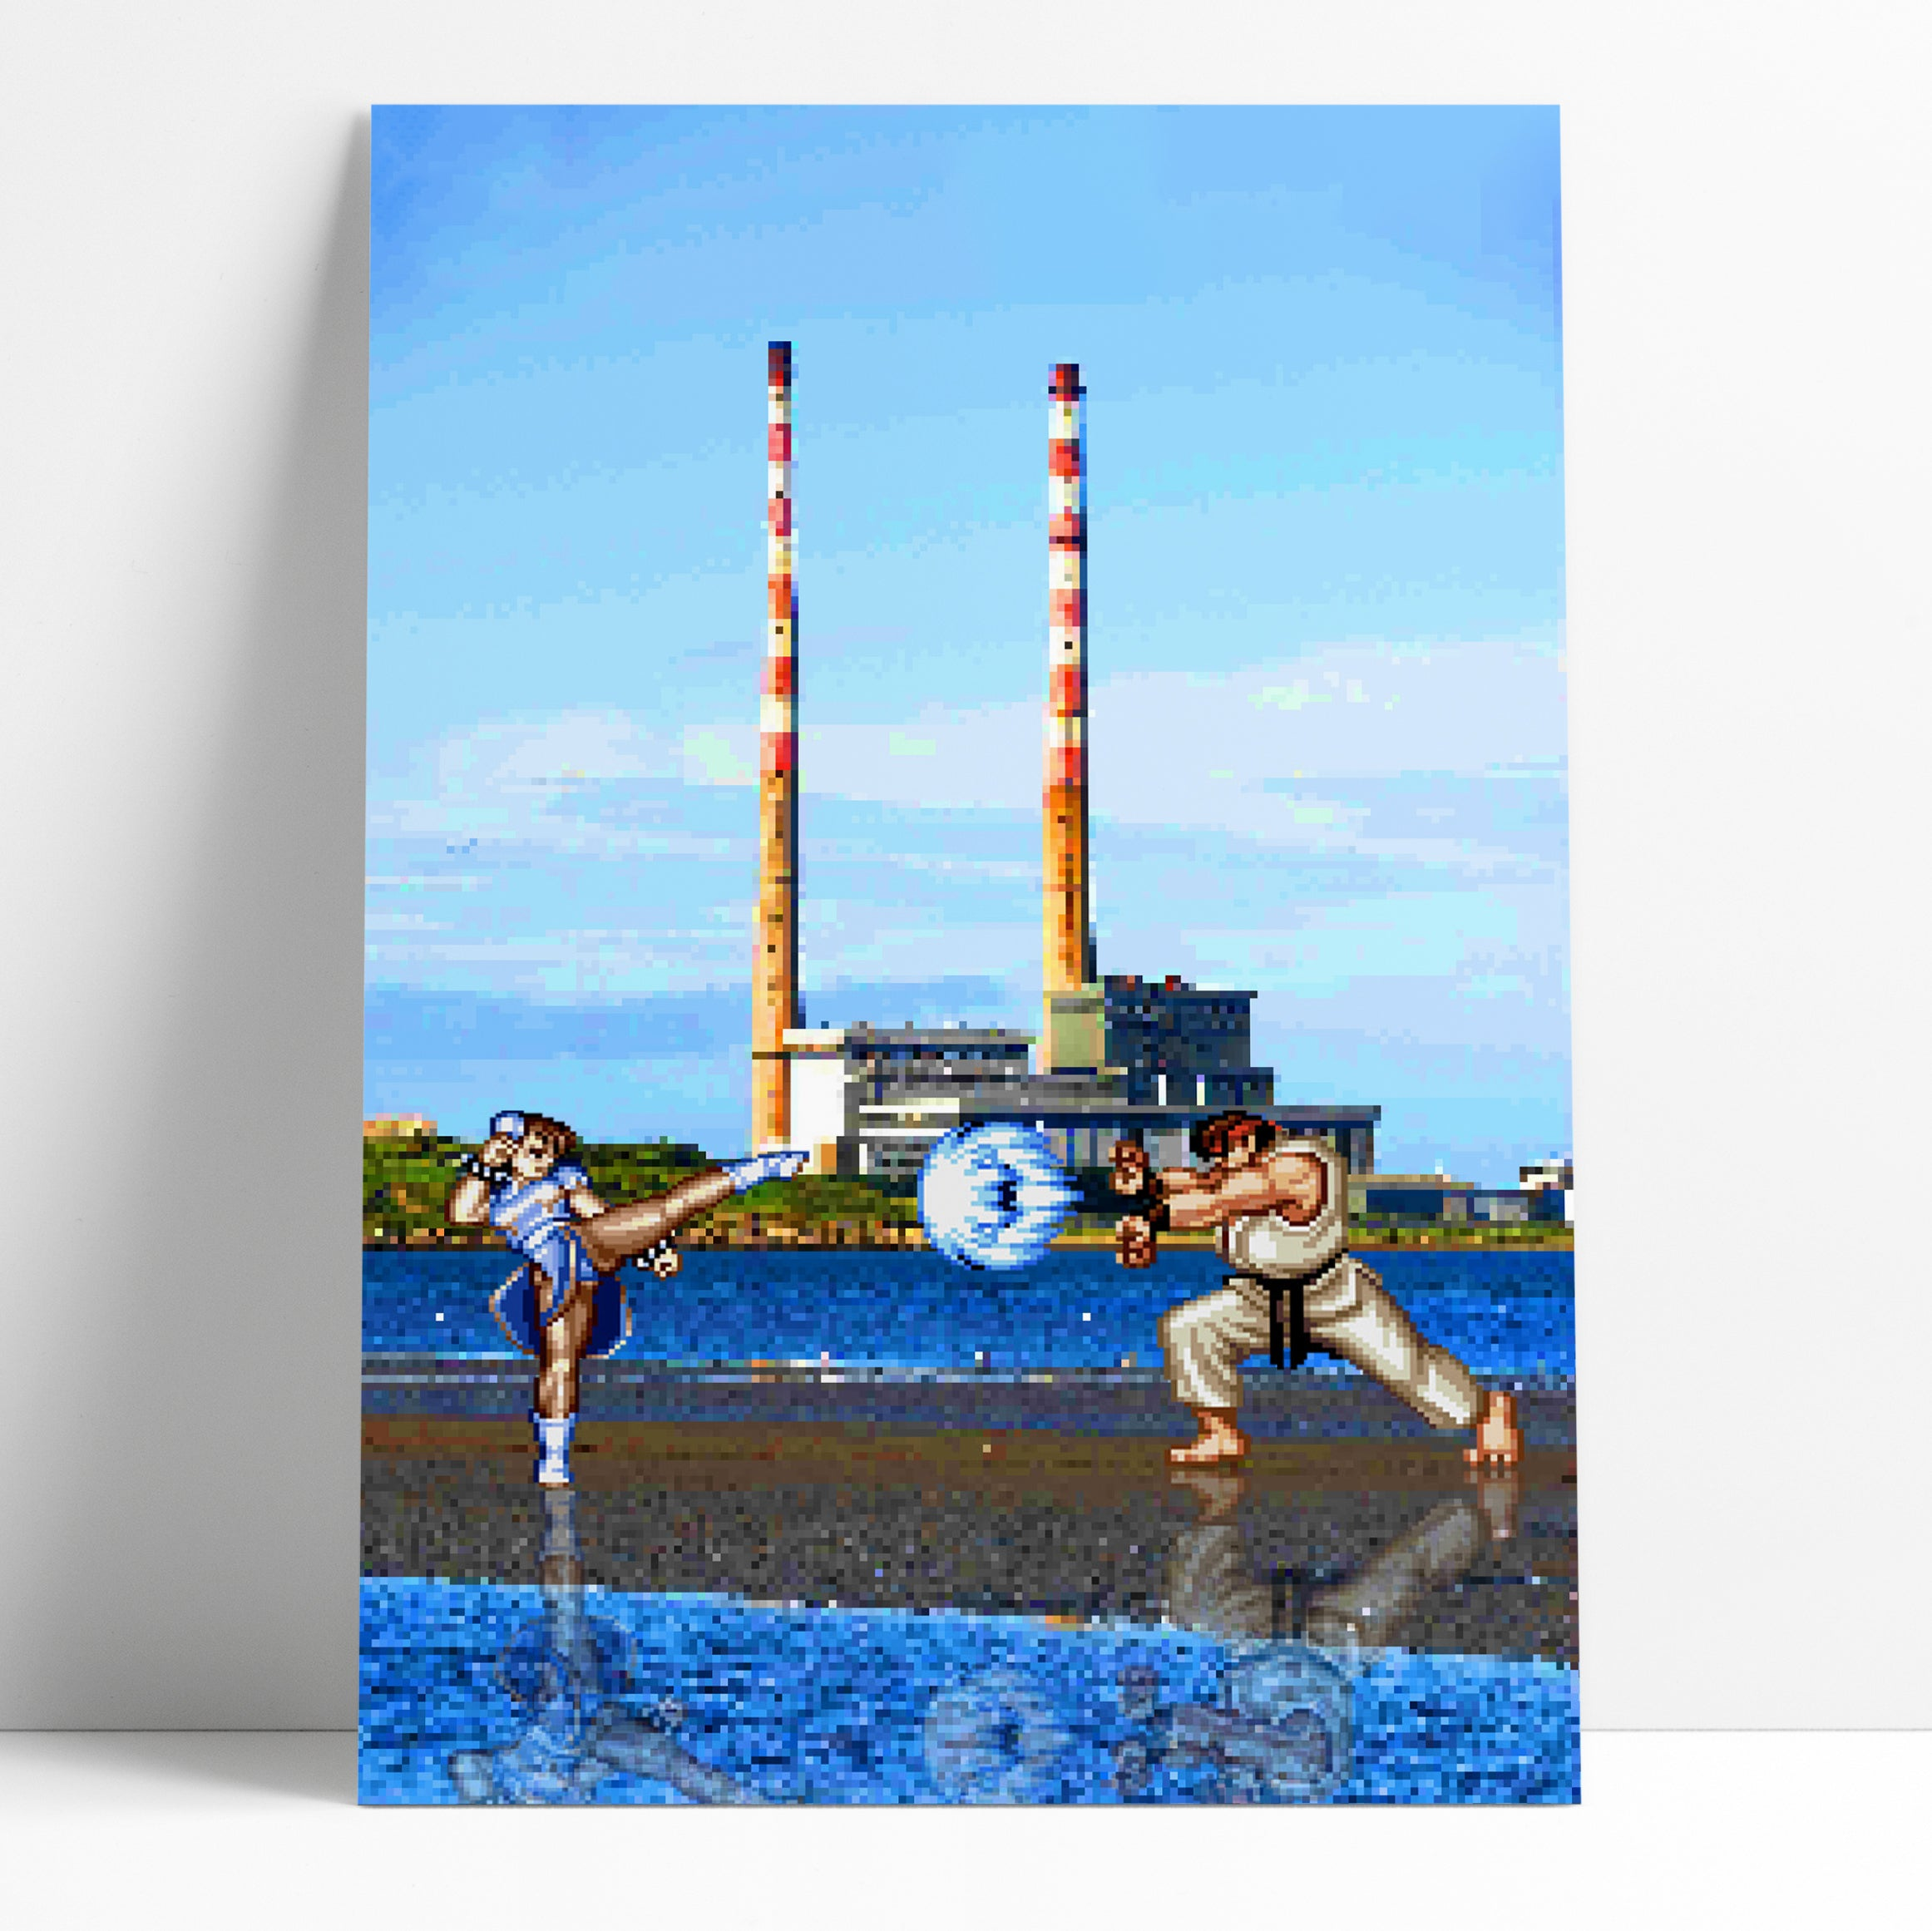 Streetfighter Poolbeg (A4 Print)